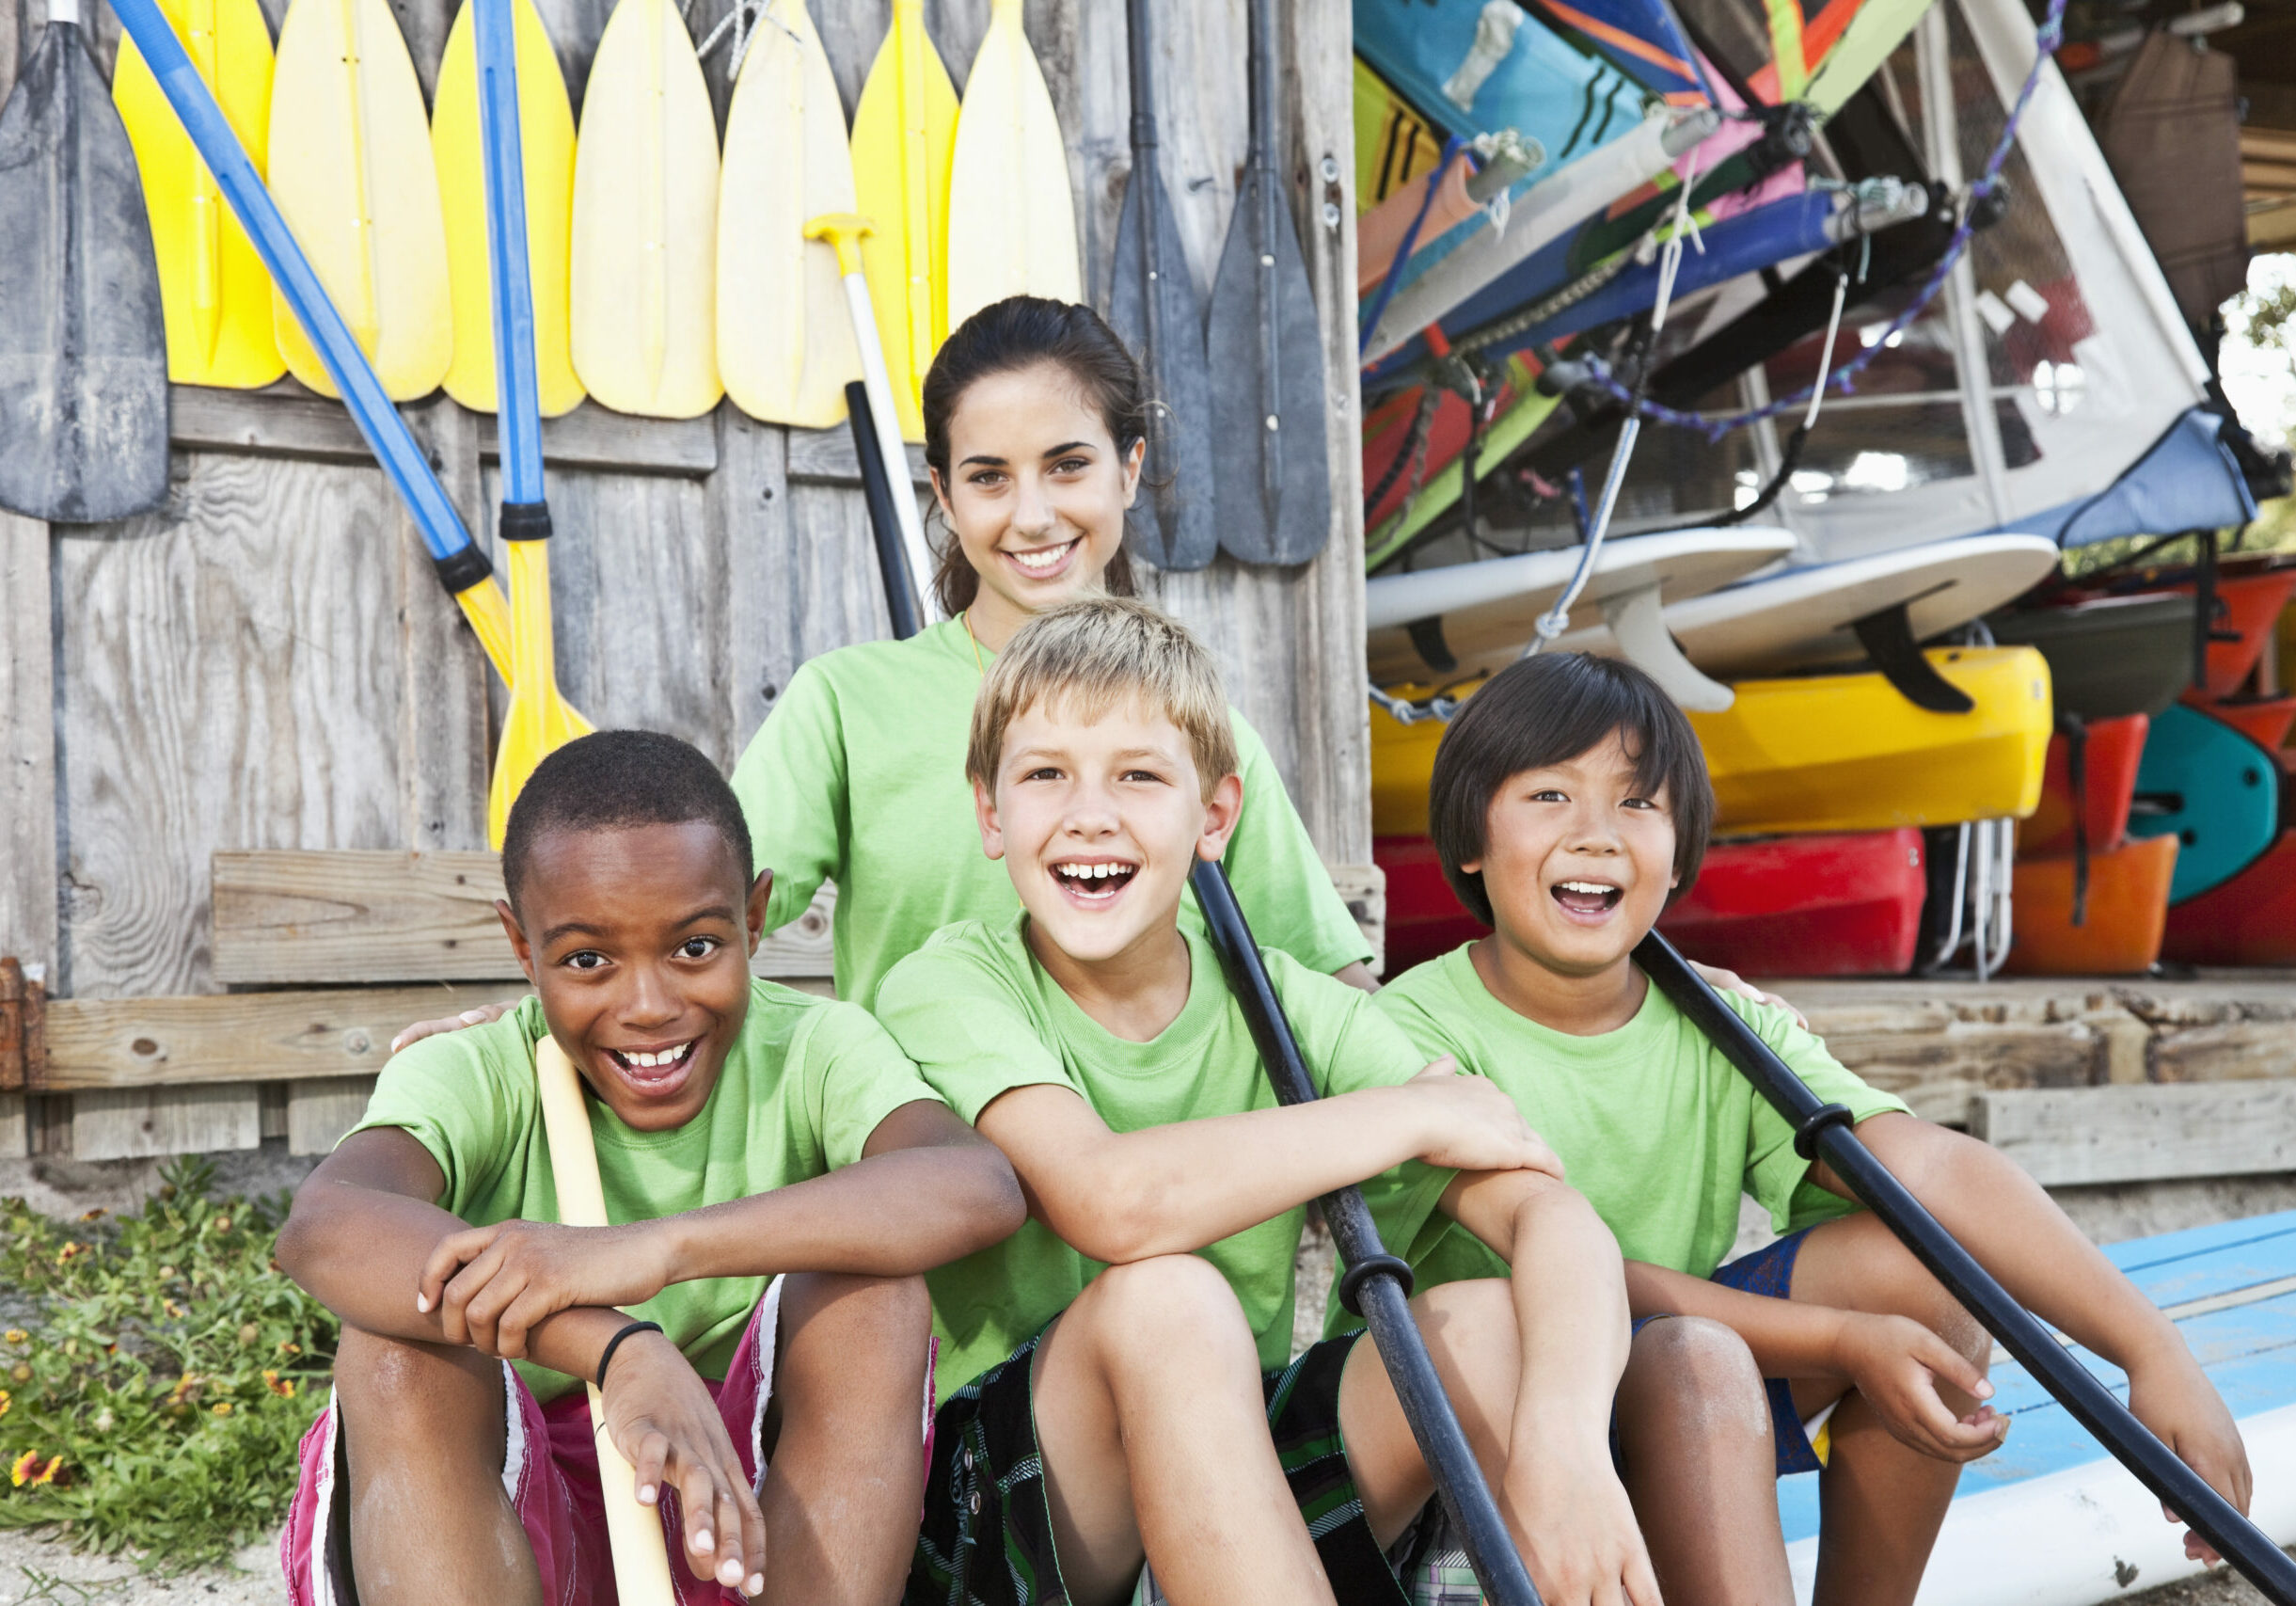 Teenage girl (17 years) with boys (8-9 years) sitting on paddle board at water sports equipment shack.